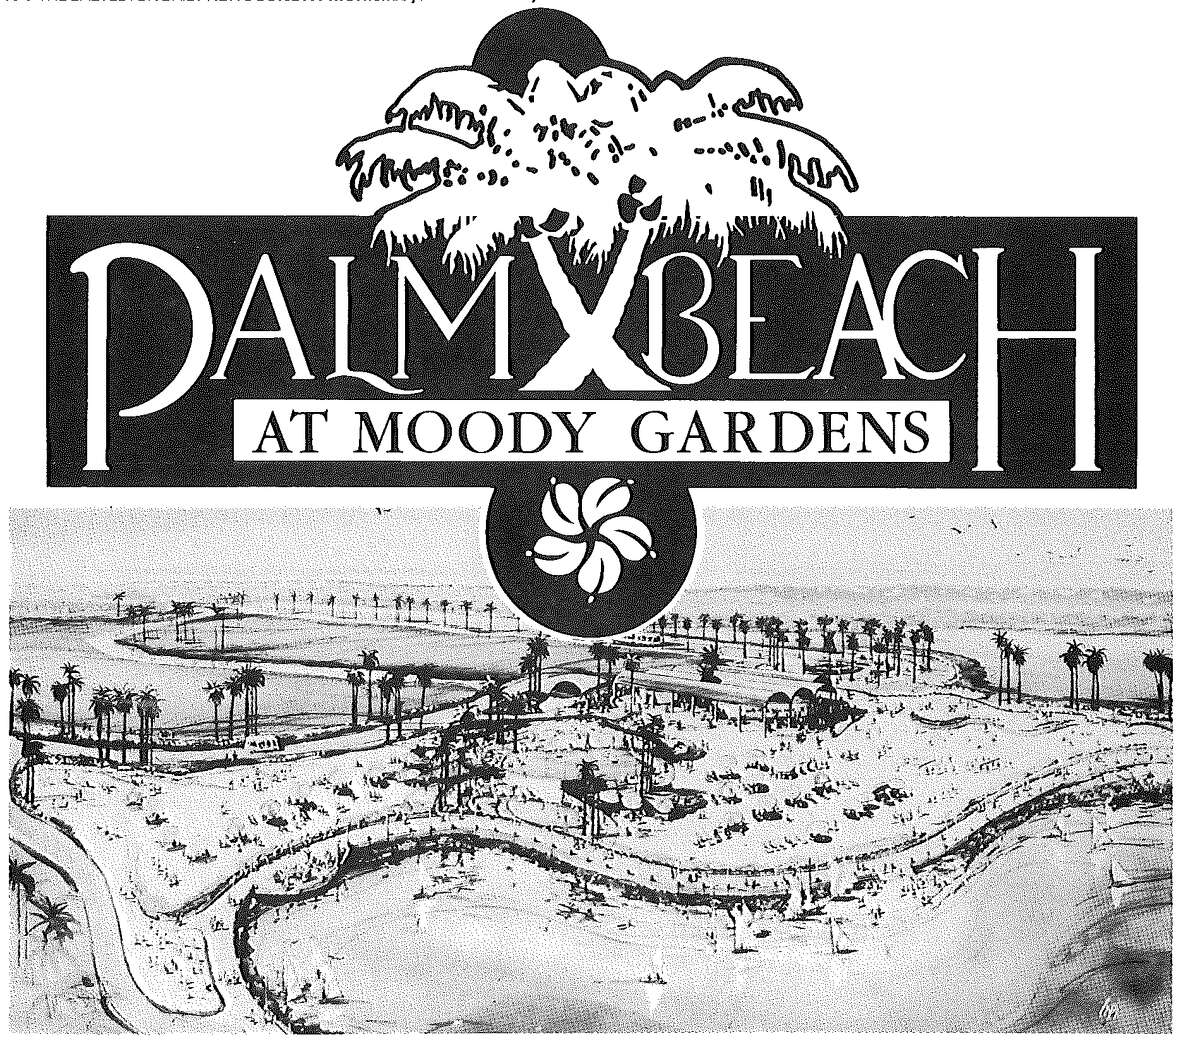 It was in 1988 that tons of soft, white sand from Florida was barged into Galveston to create Palm Beach.